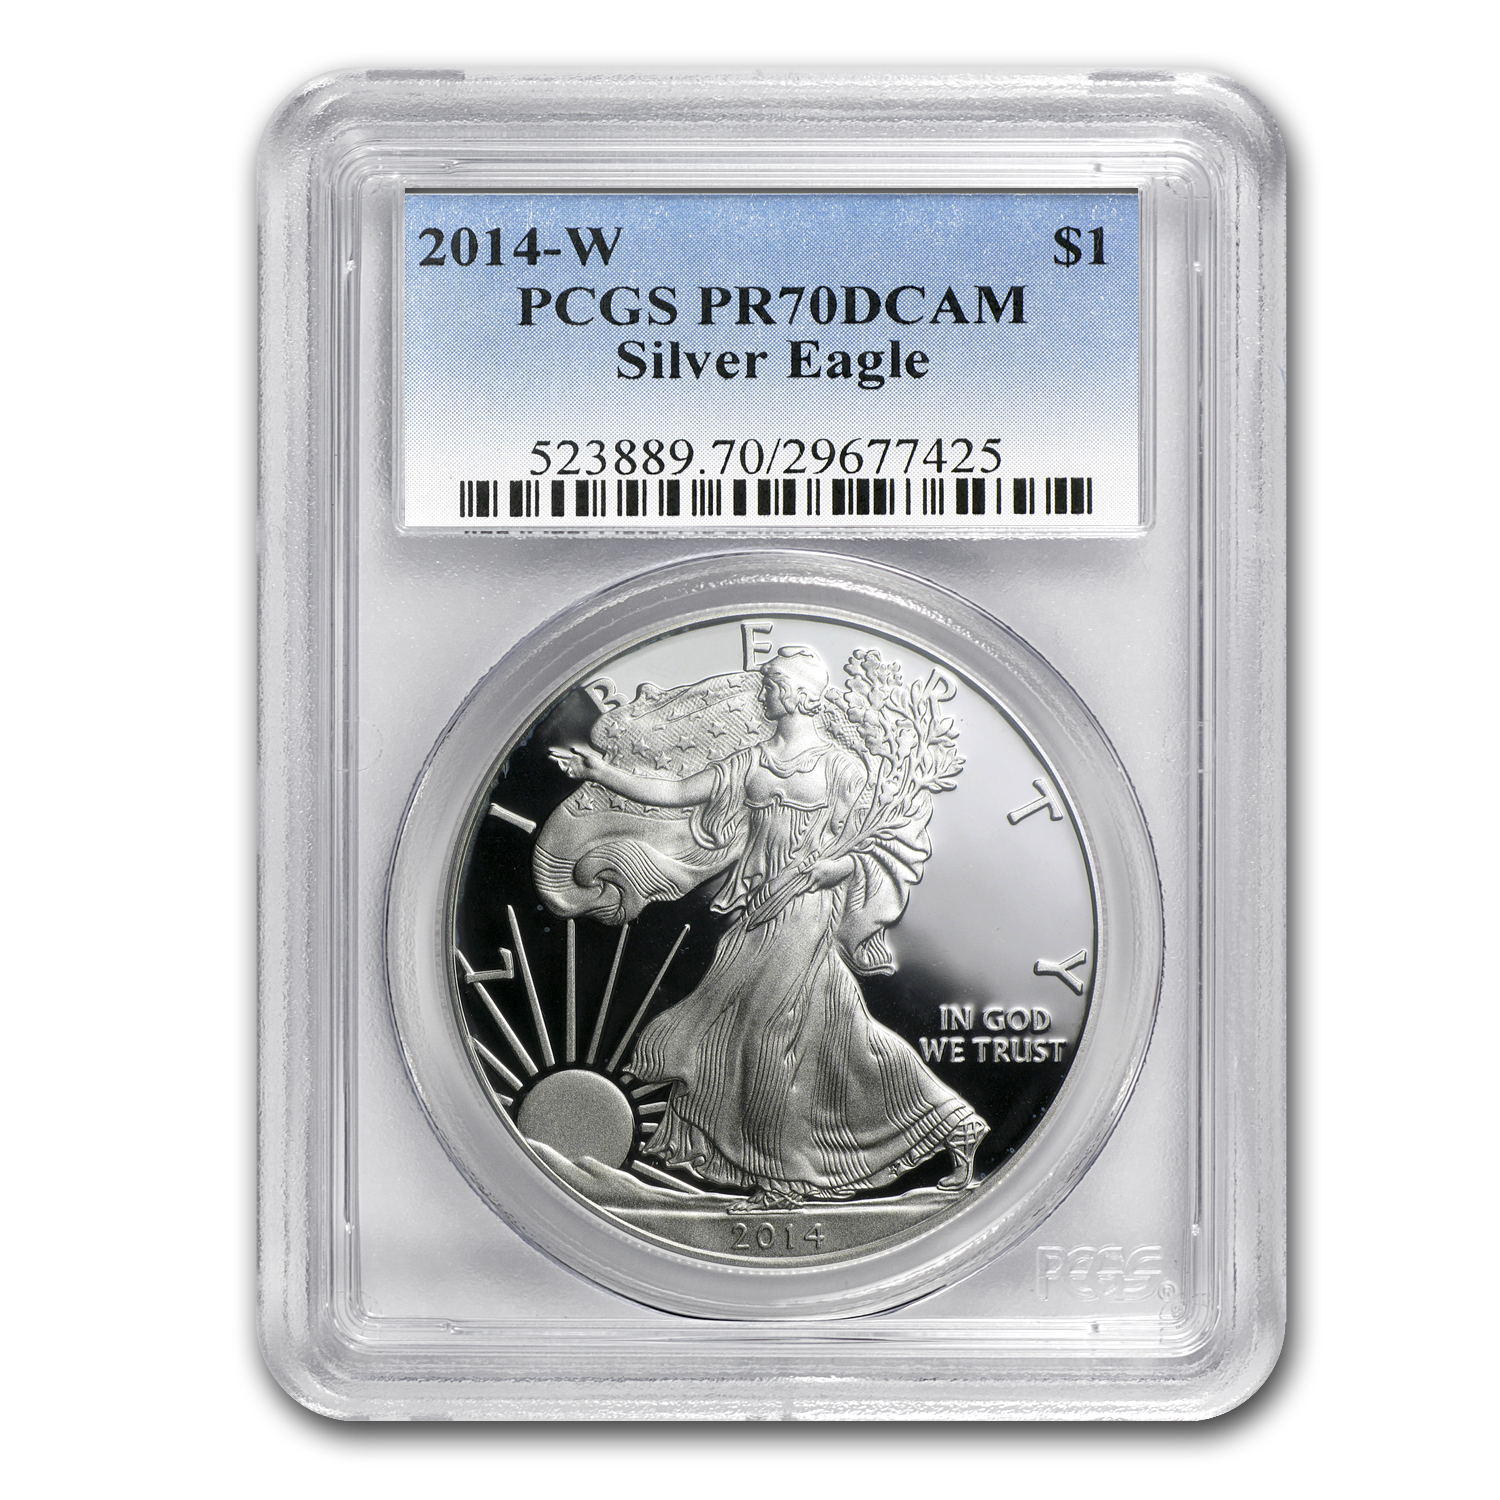 2014-W Proof Silver American Eagle PR-70 PCGS